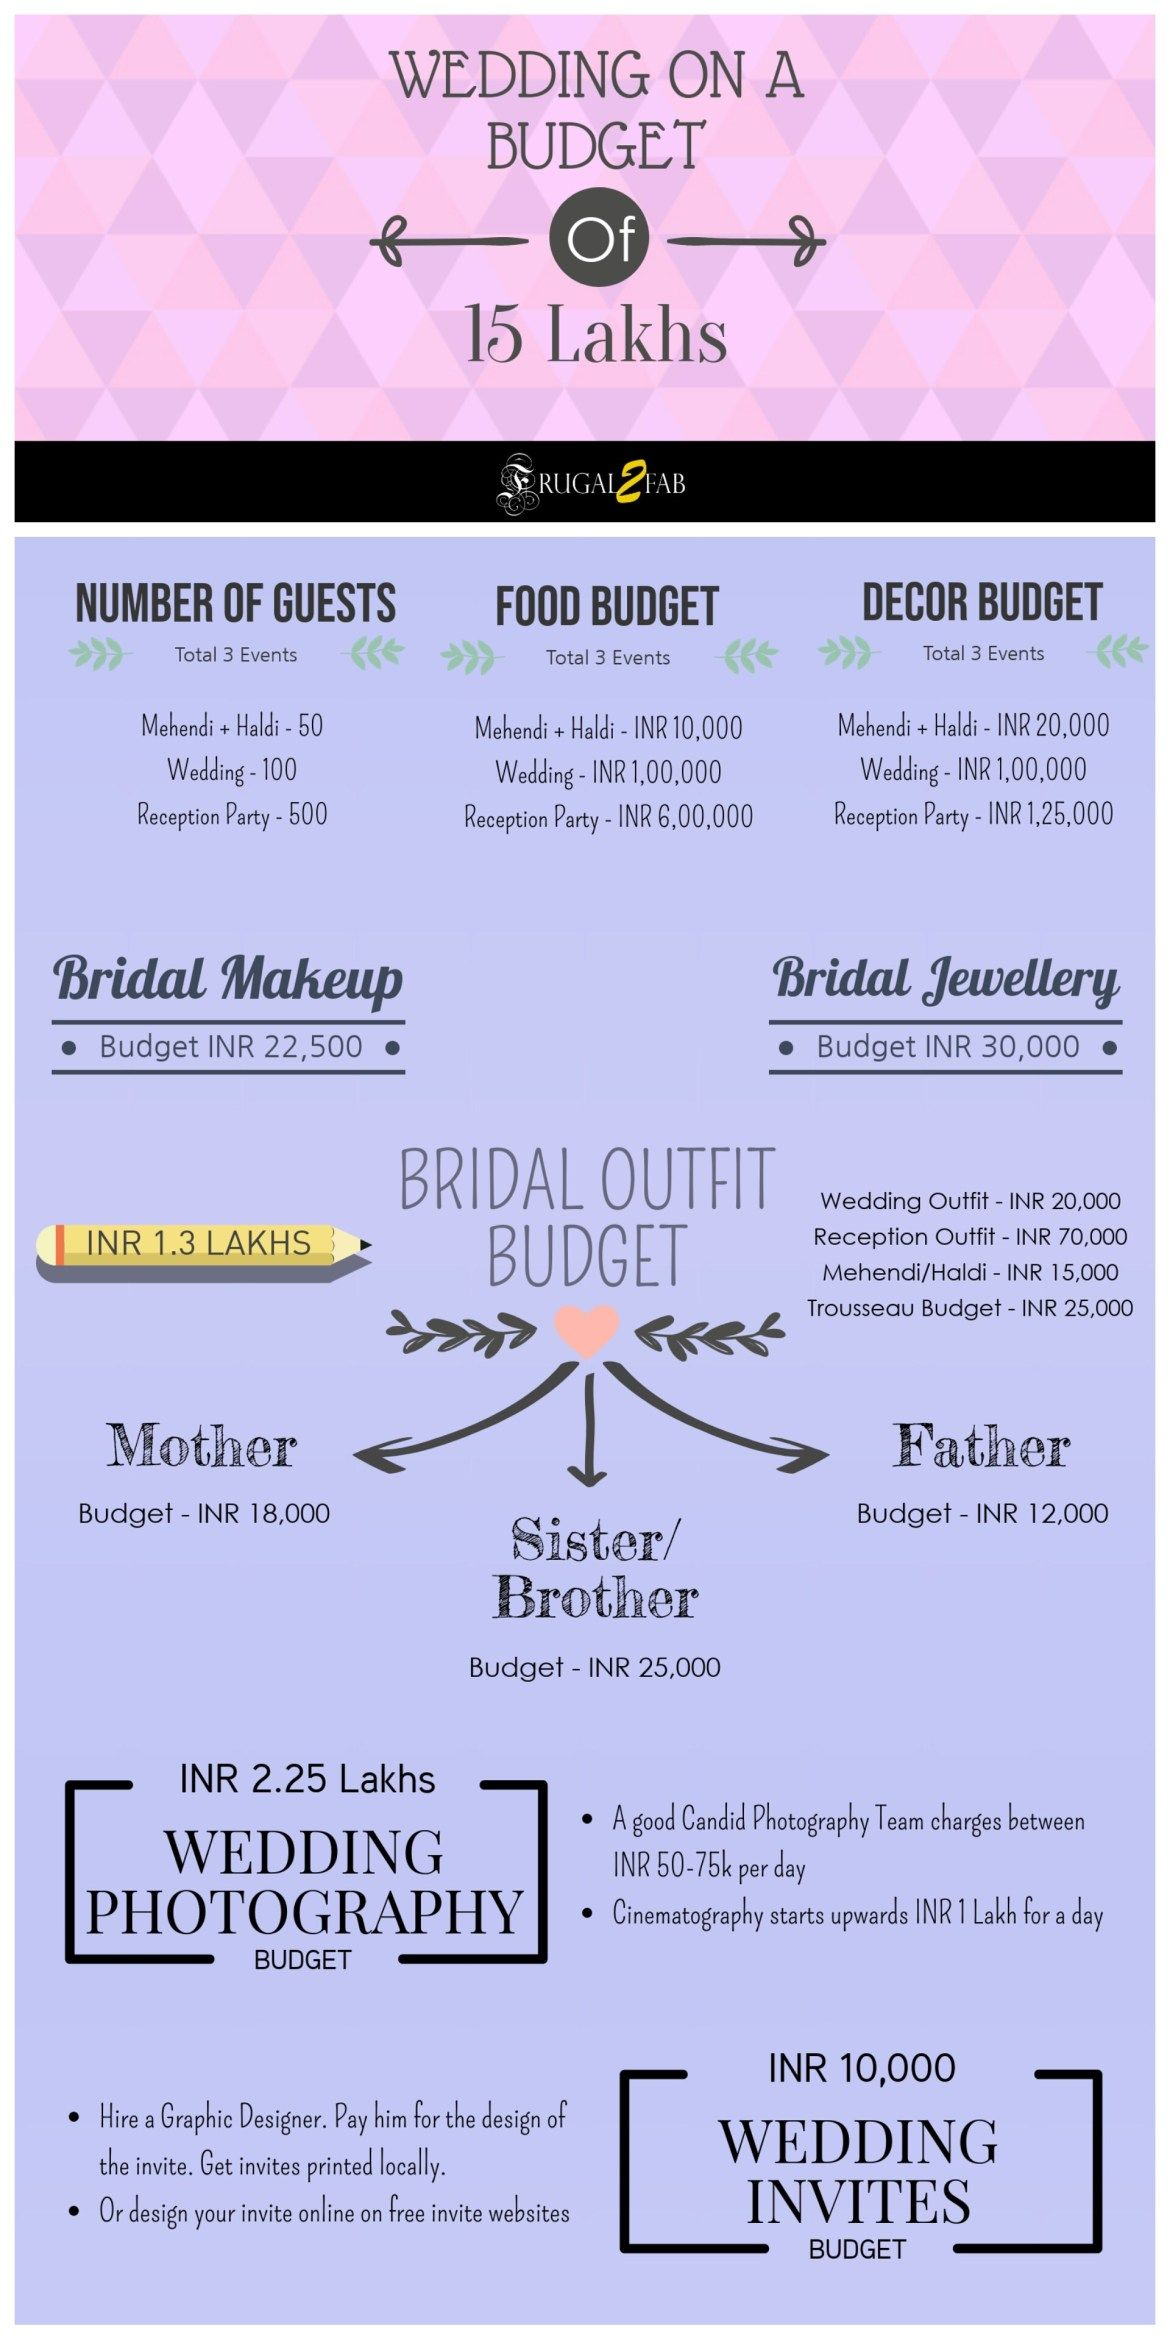 How To Plan A Wedding Under 15 Lakhs